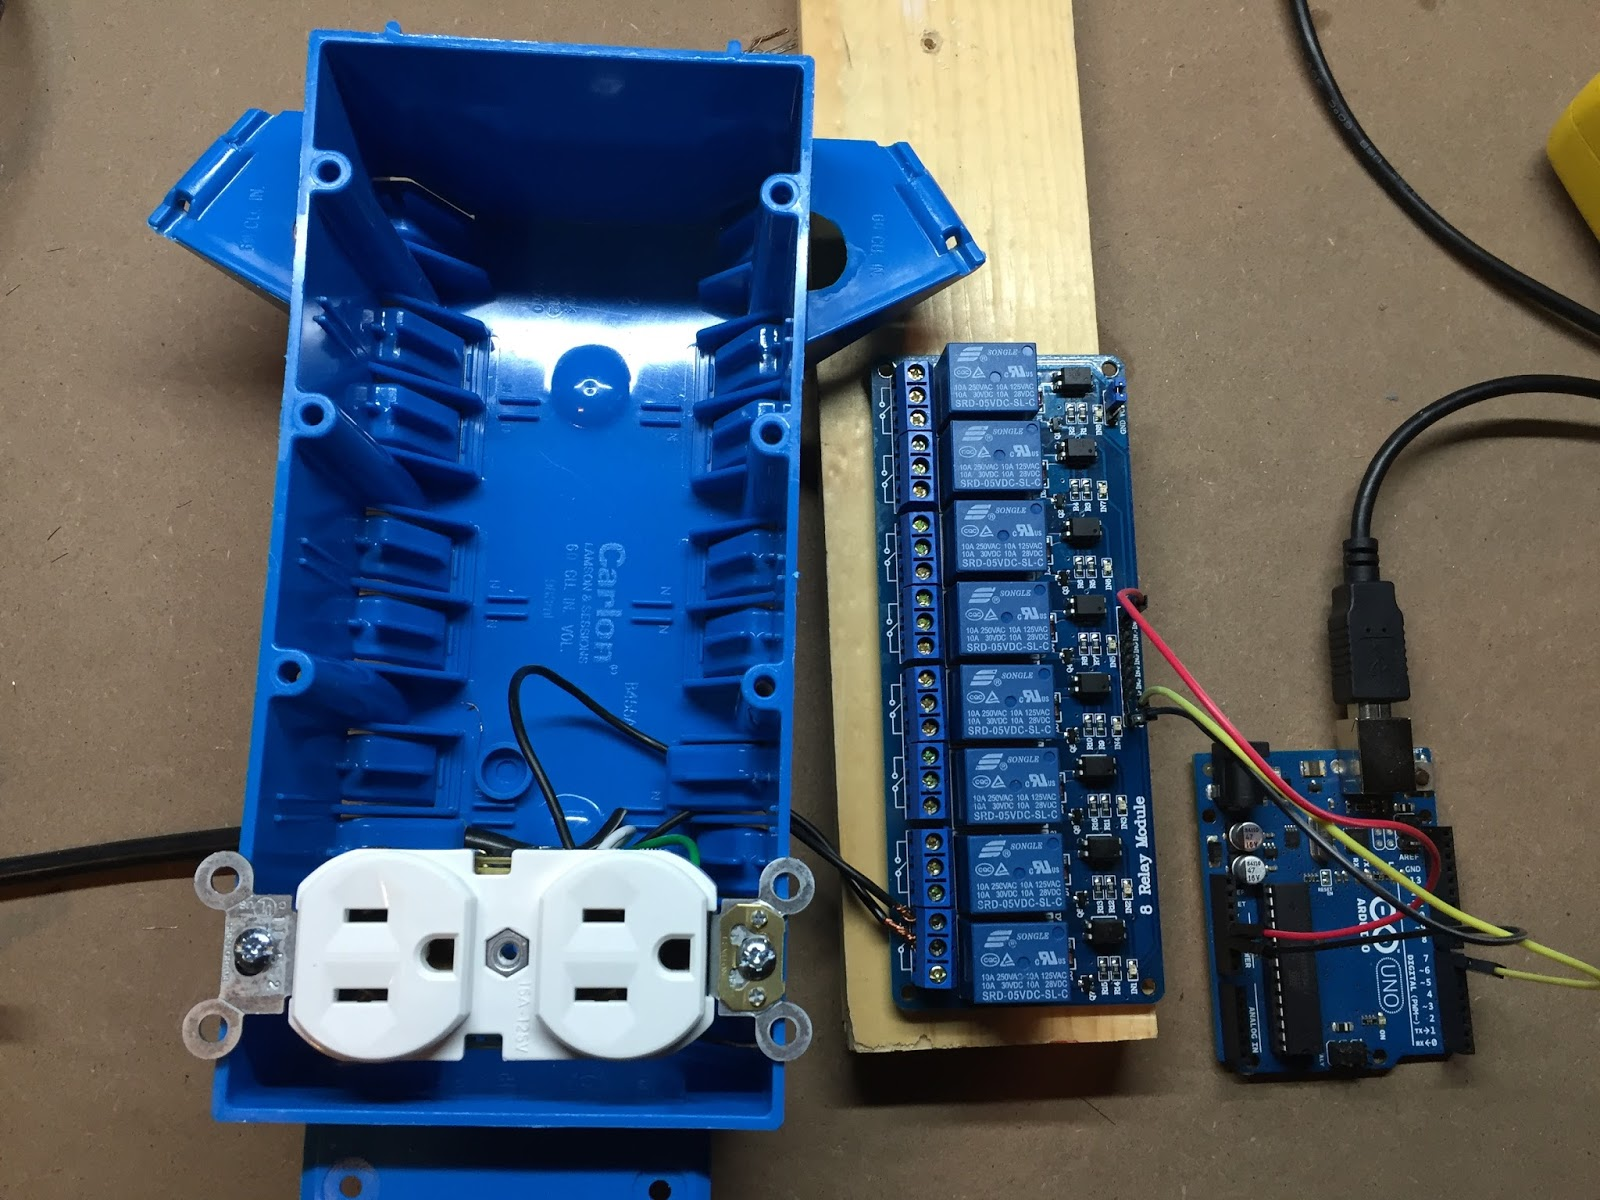 Arduino Relay Outlet Thejoestory Tech Wiring A Module Hot Wire Black From Power Cord Is Wired To Common Middle Terminal On The